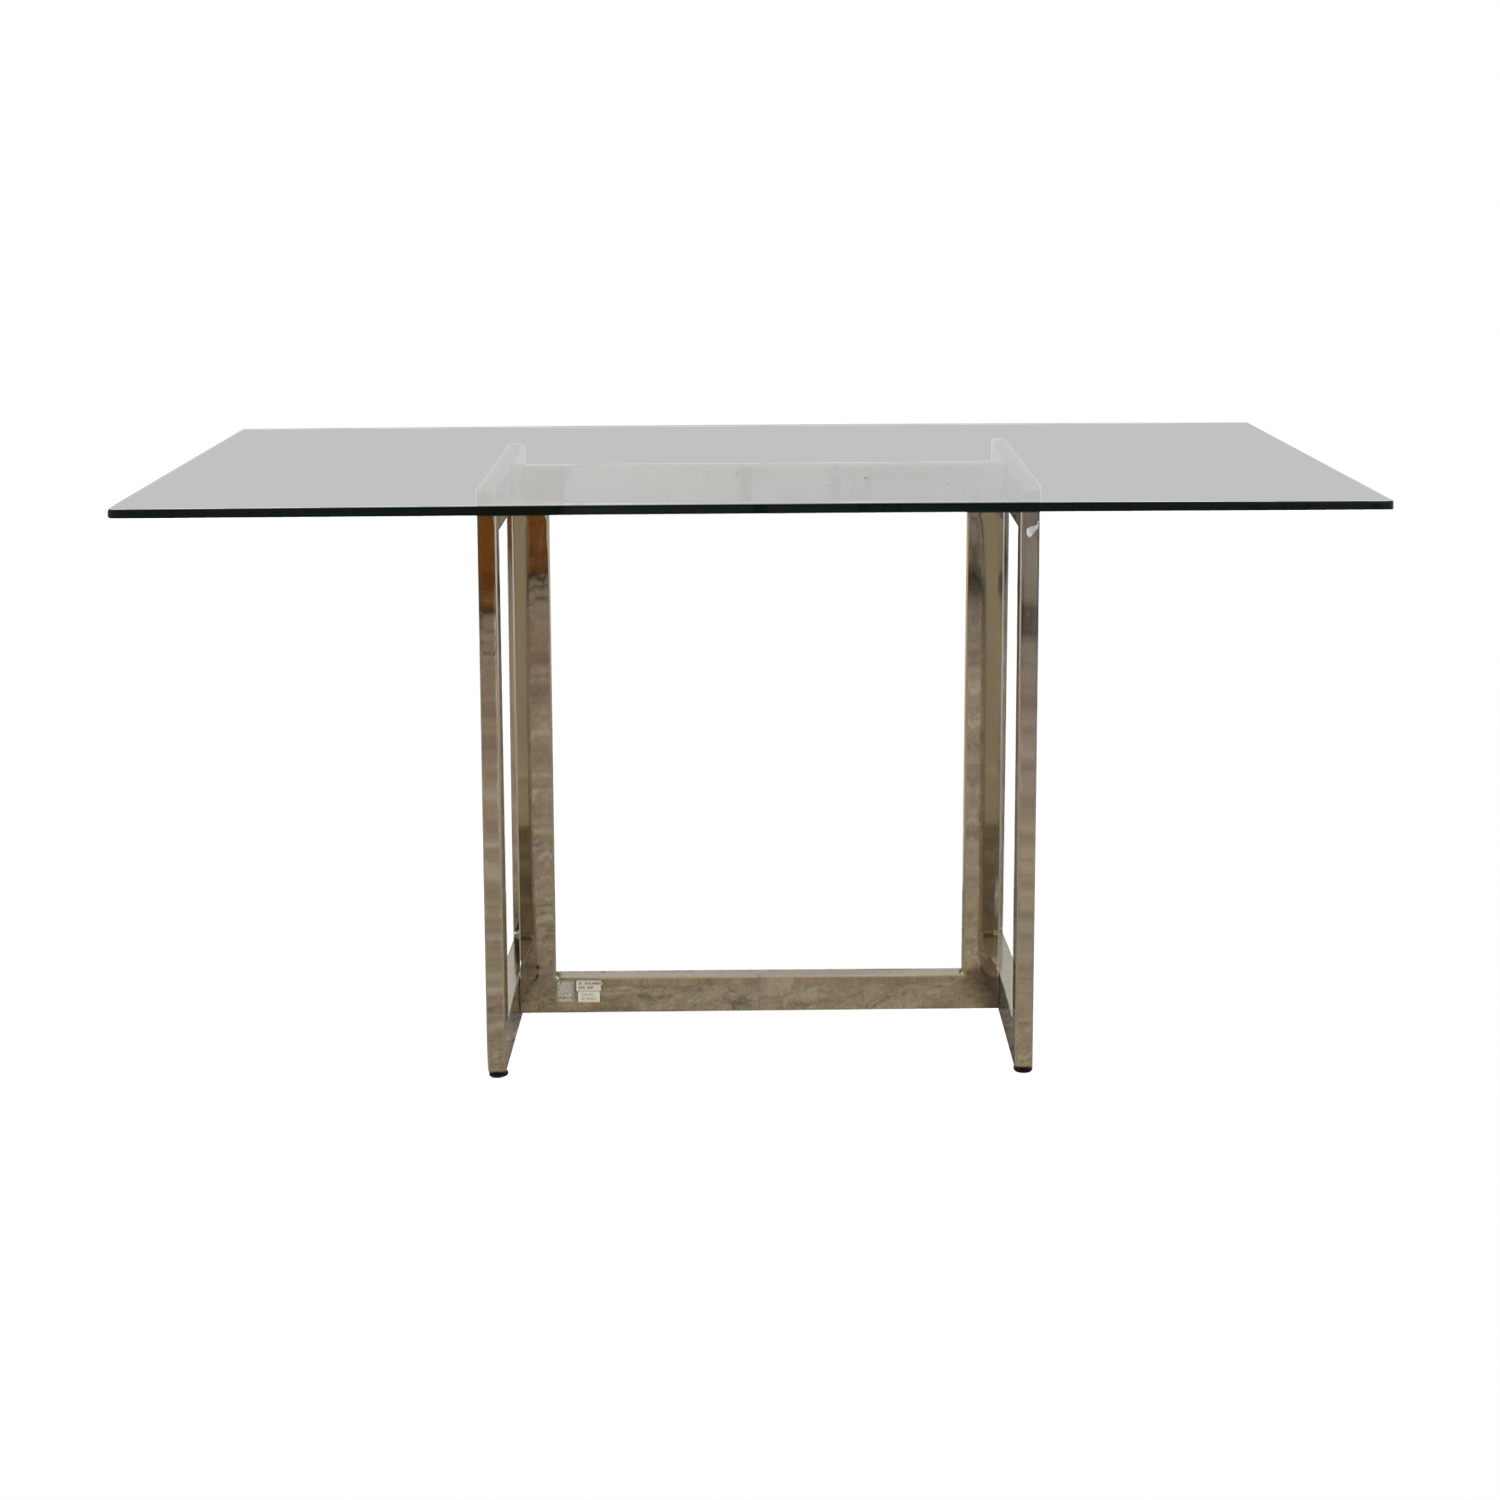 OFF CB CB Metal And Glass Rectangular Dining Table Tables - Cb2 expandable dining table